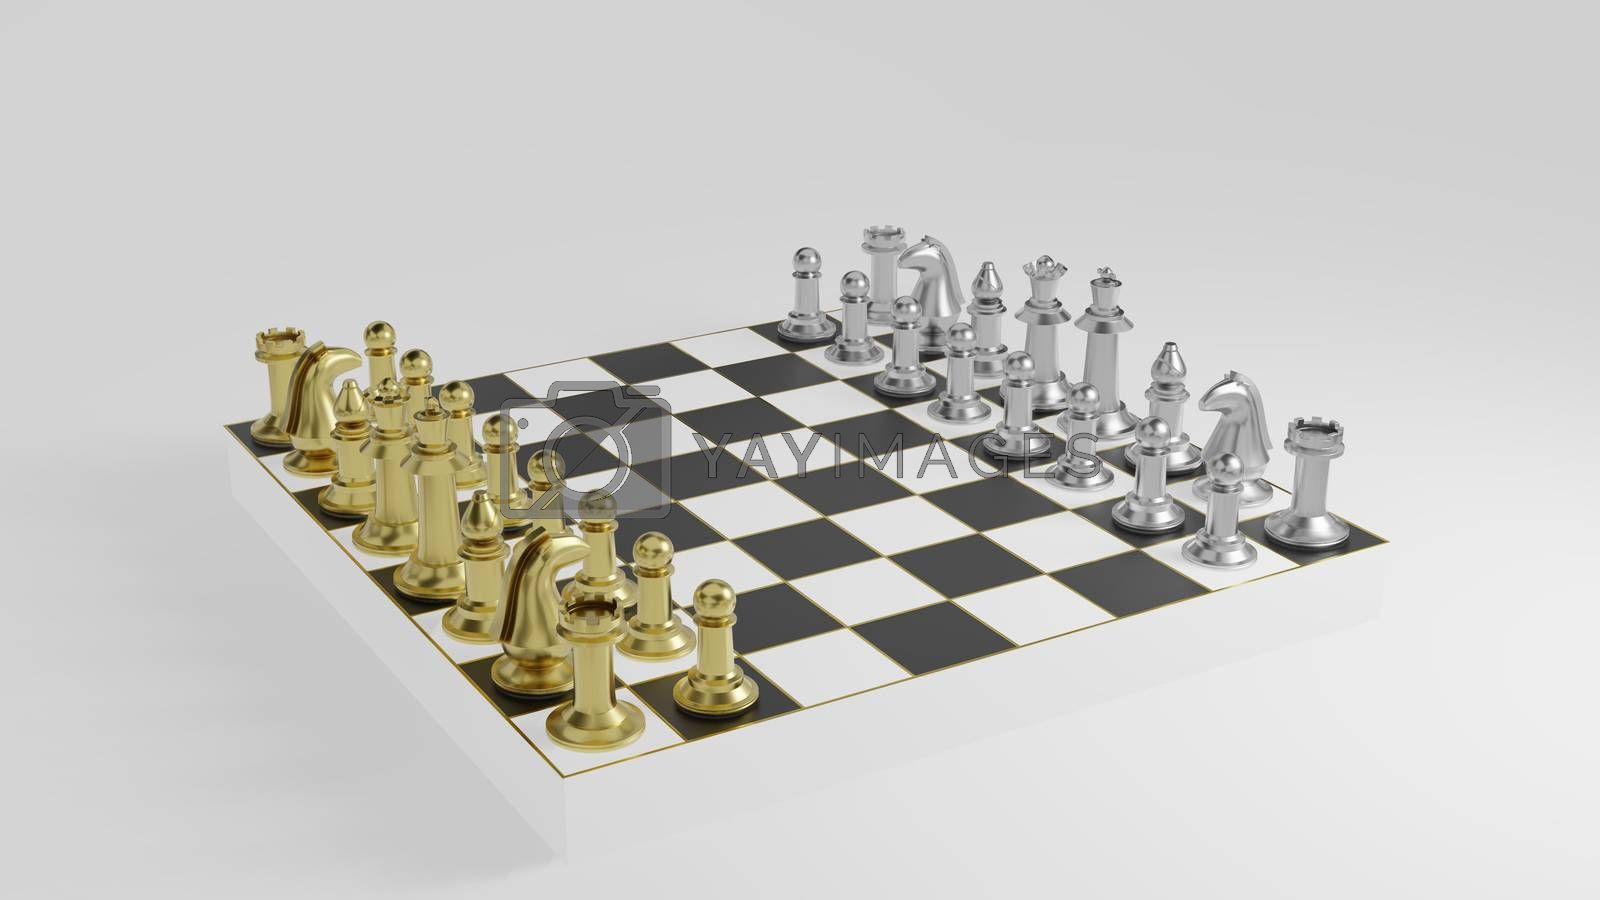 Royalty free image of Golden and silver chess pieces on black and white board by eaglesky